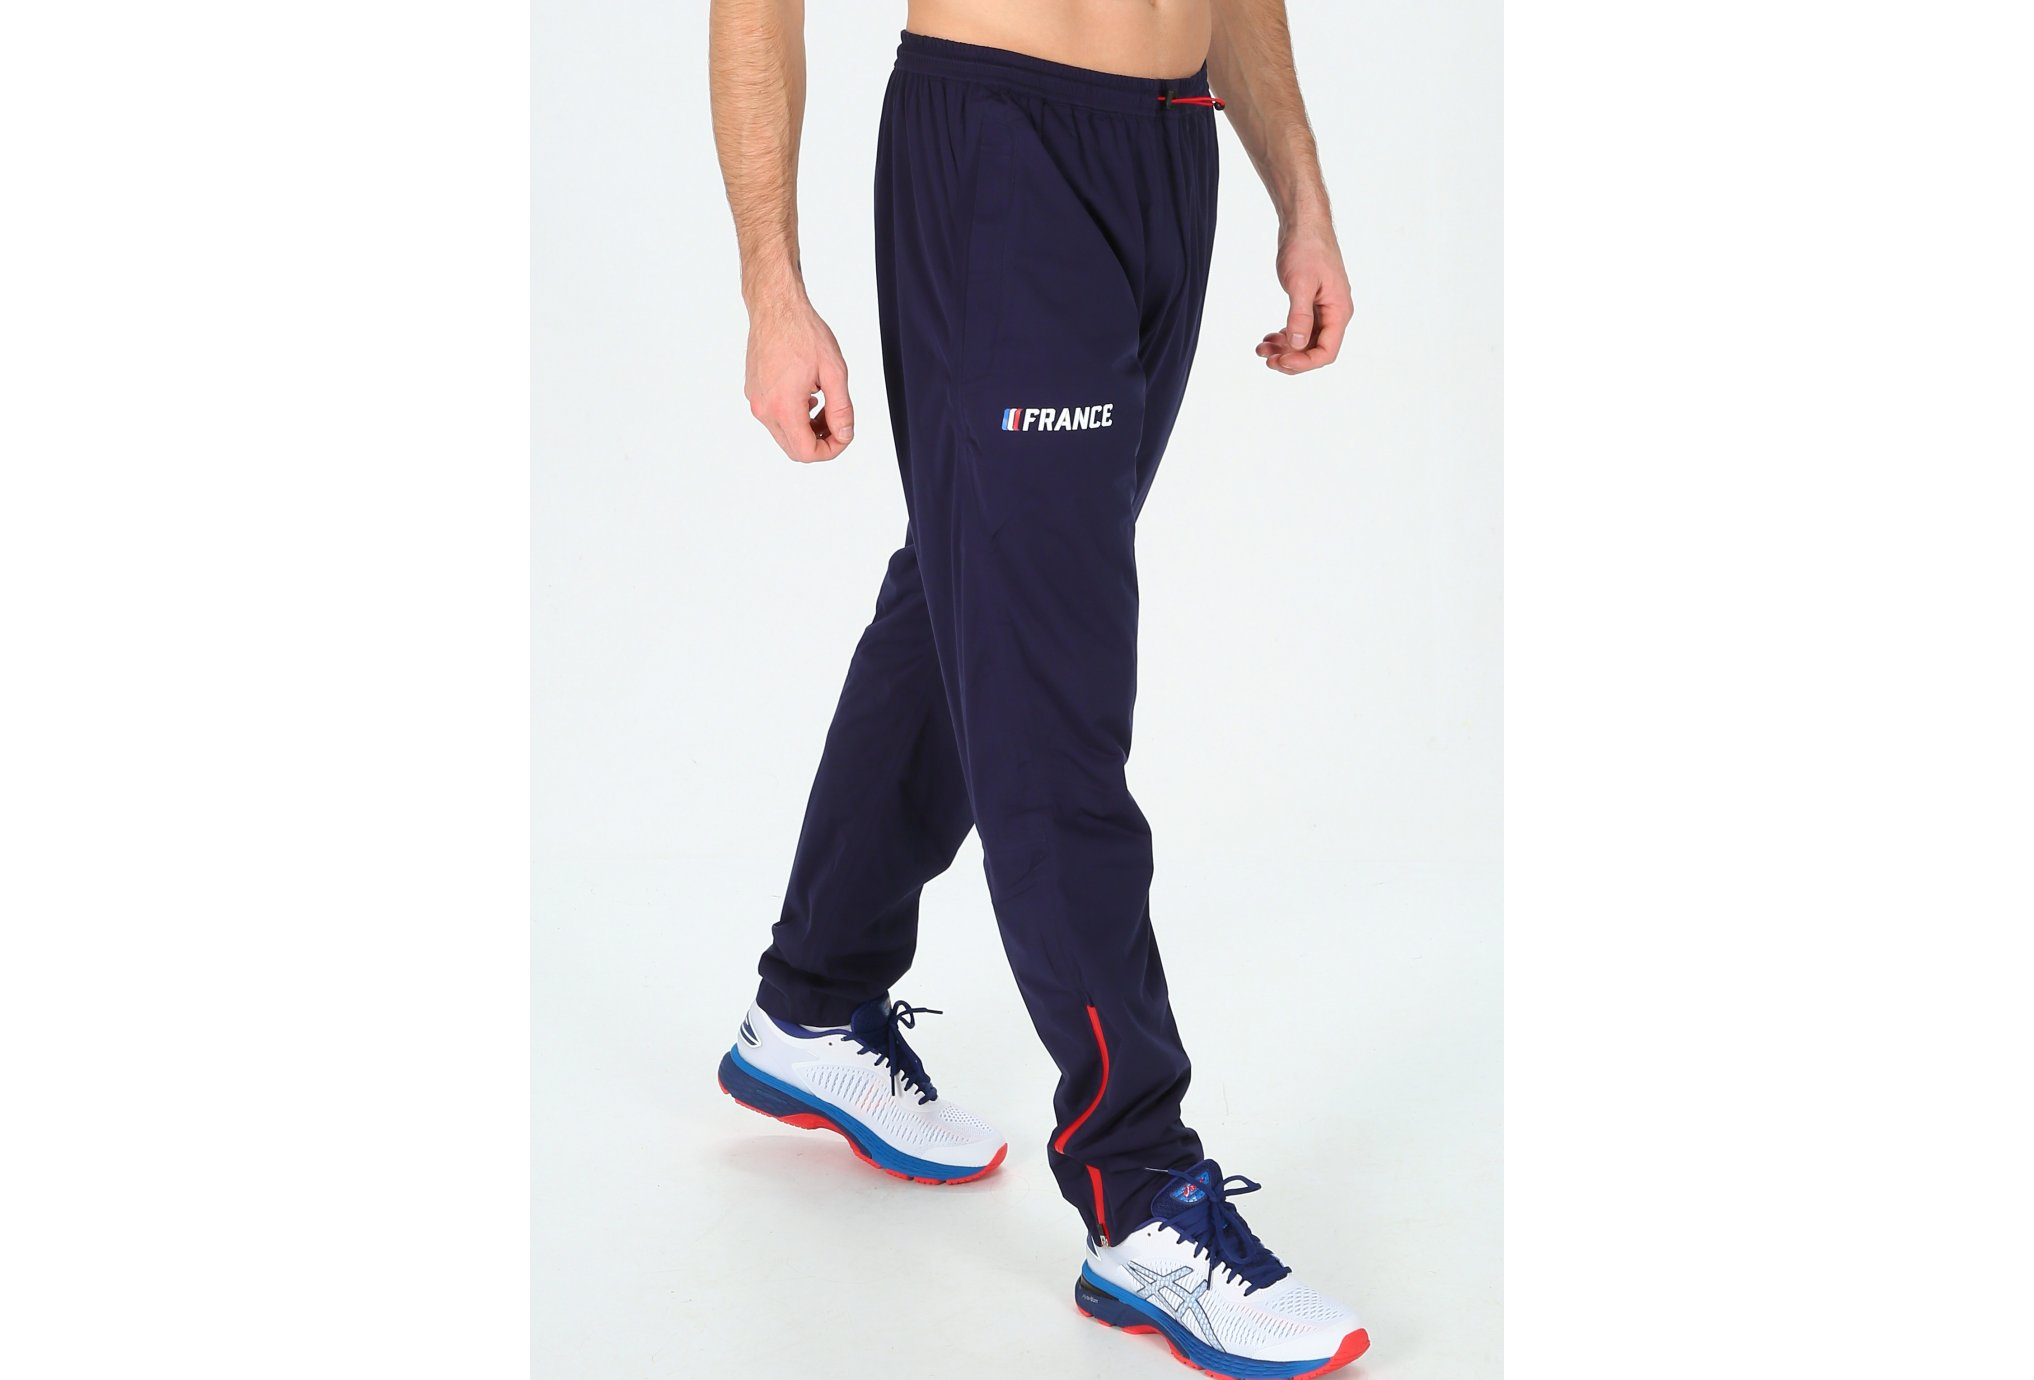 Asics Rain Pants France M vêtement running homme